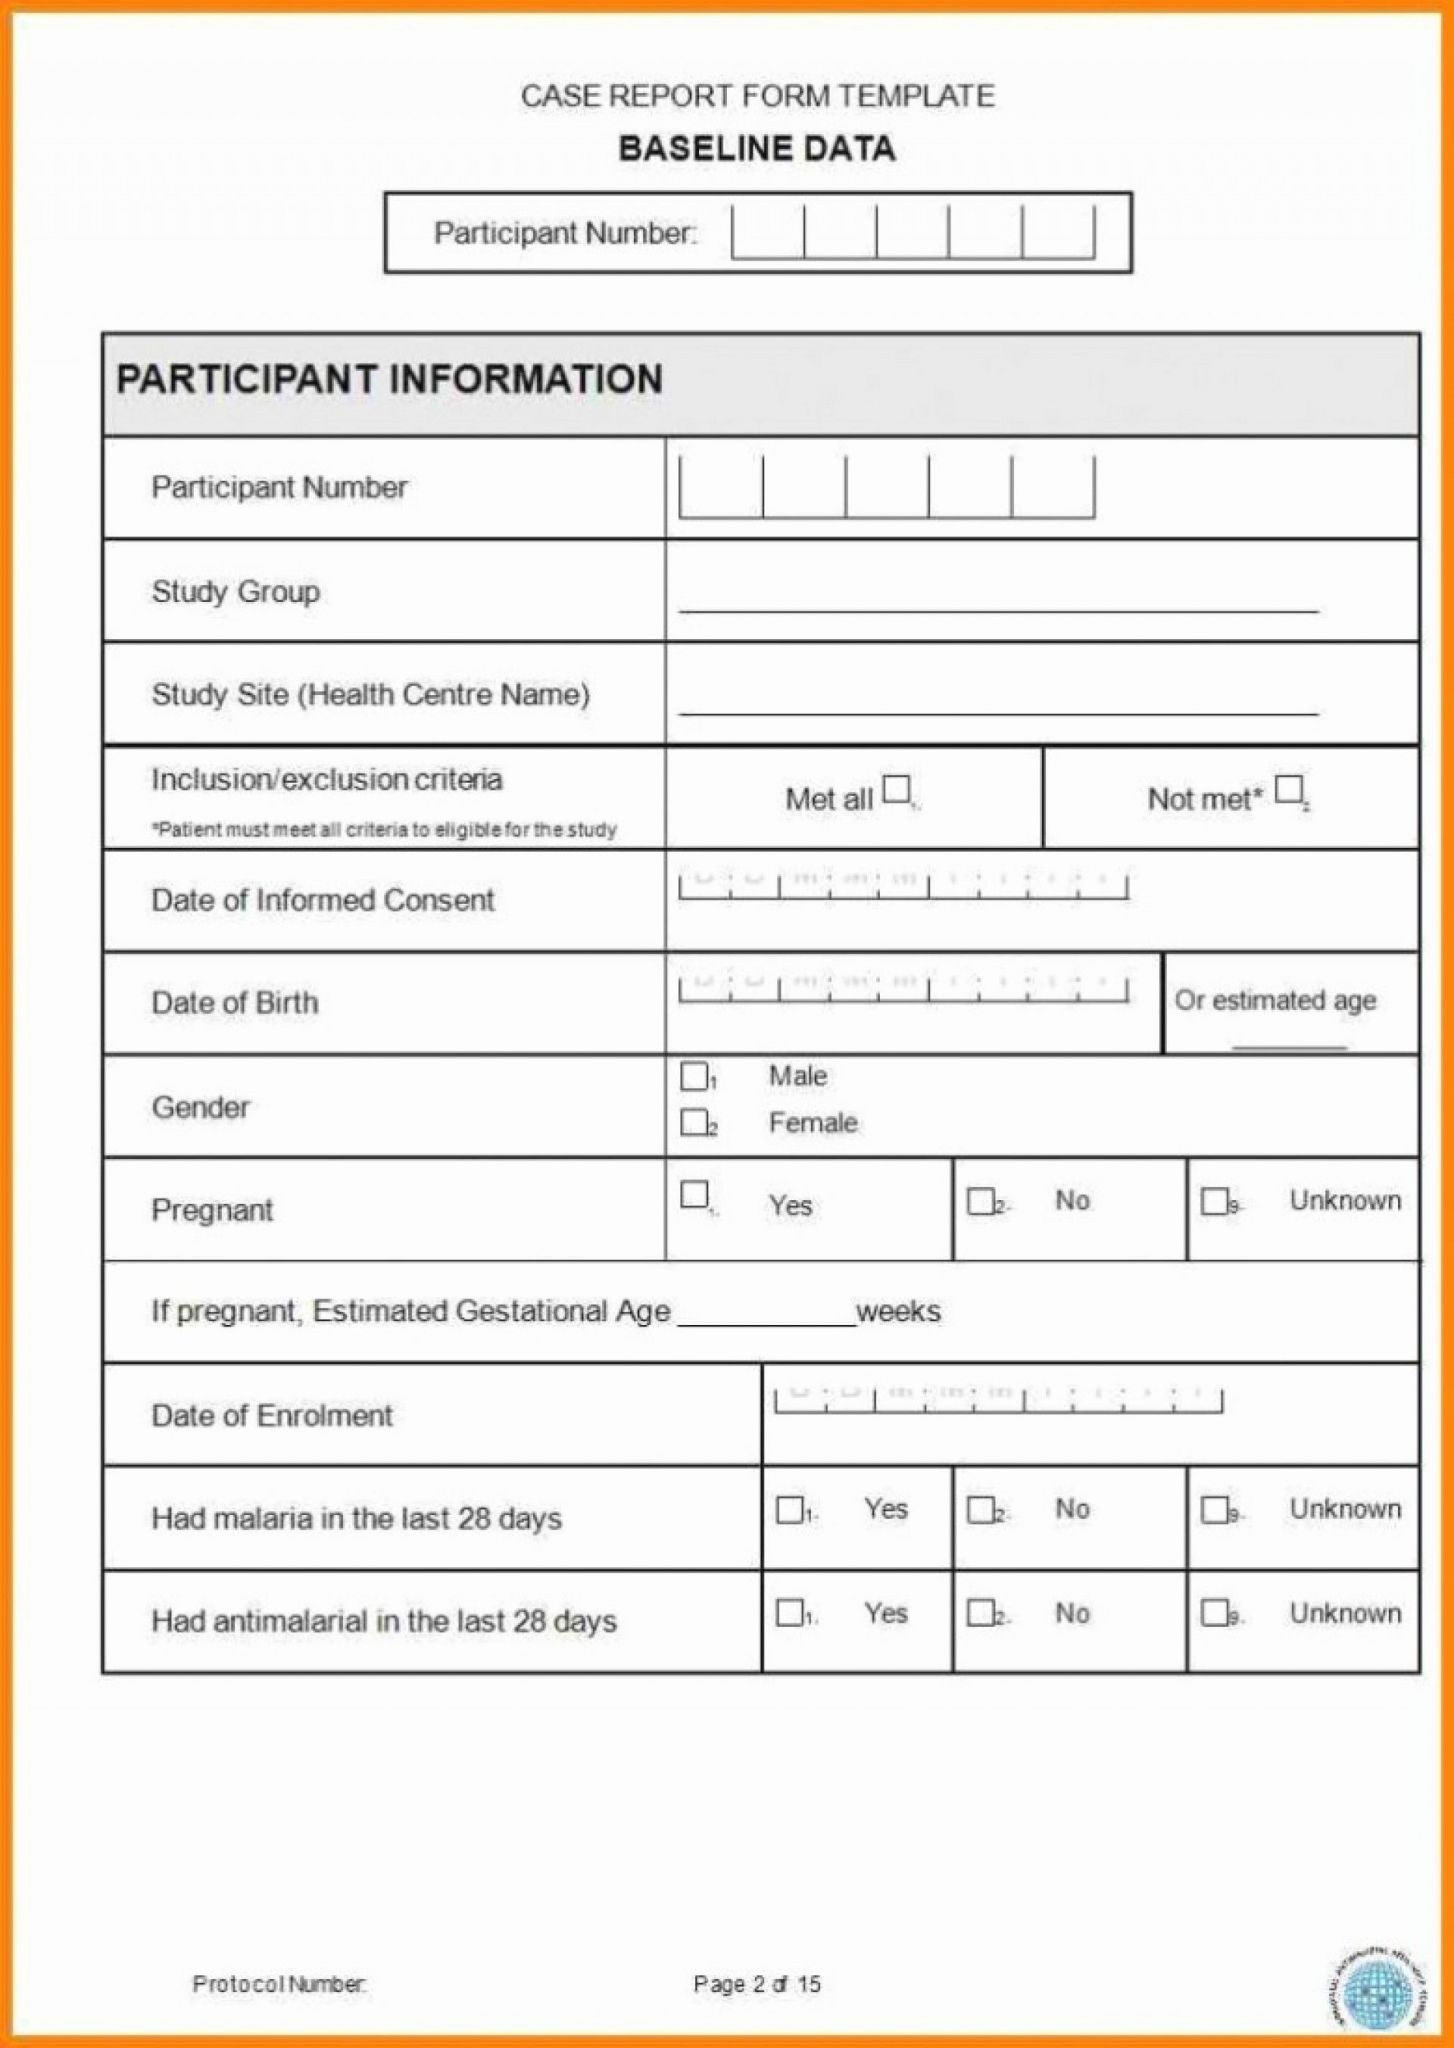 Case Report Form Template Unique Catering Resume Clinical In Case Report Form Template